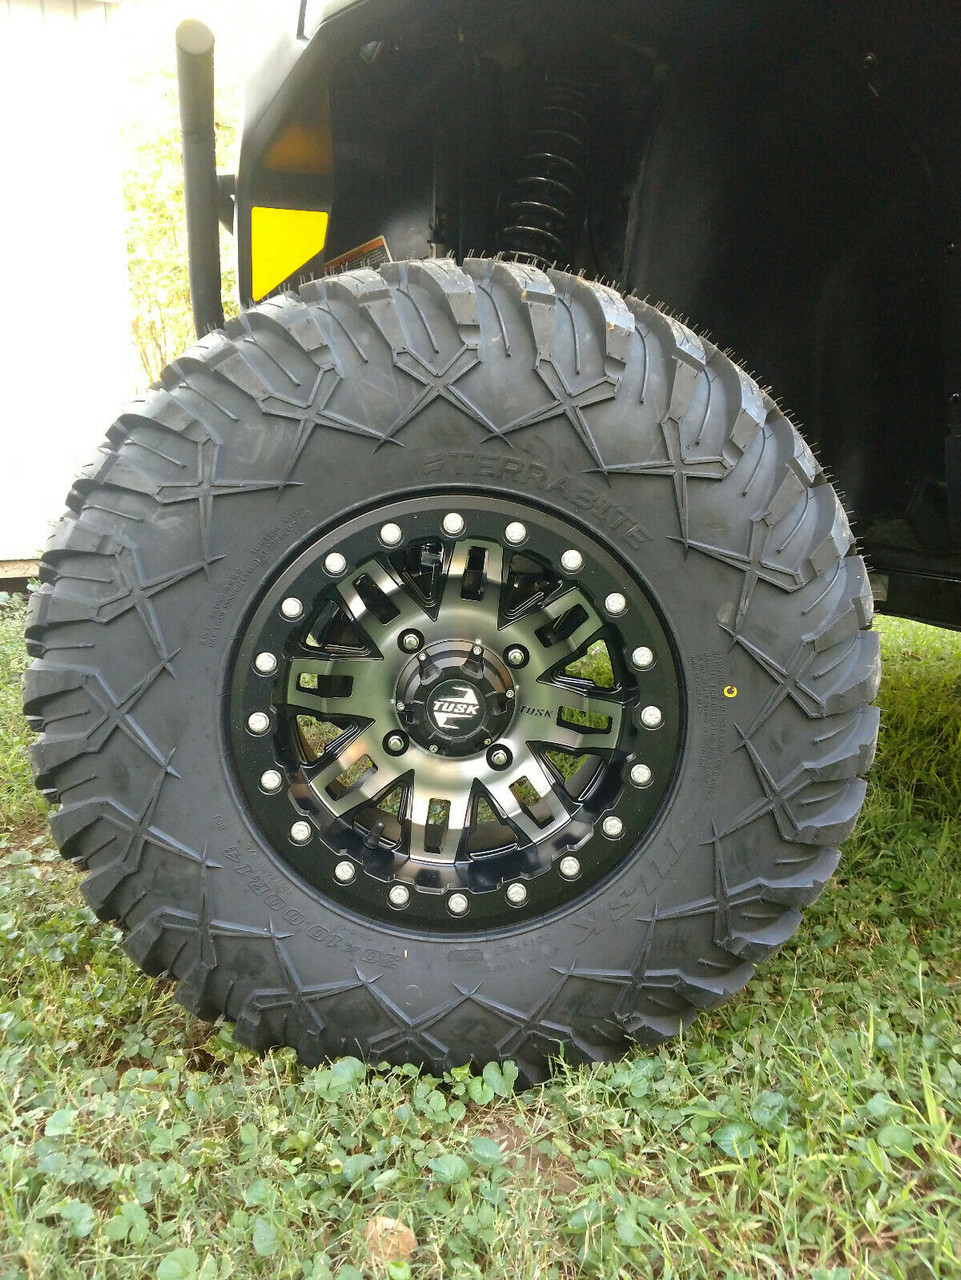 Tusk Tire / Wheel Kit Terrabite 30x10-14 Mounted Beadlocks 14x7 Defender HD5 HD8 HD10